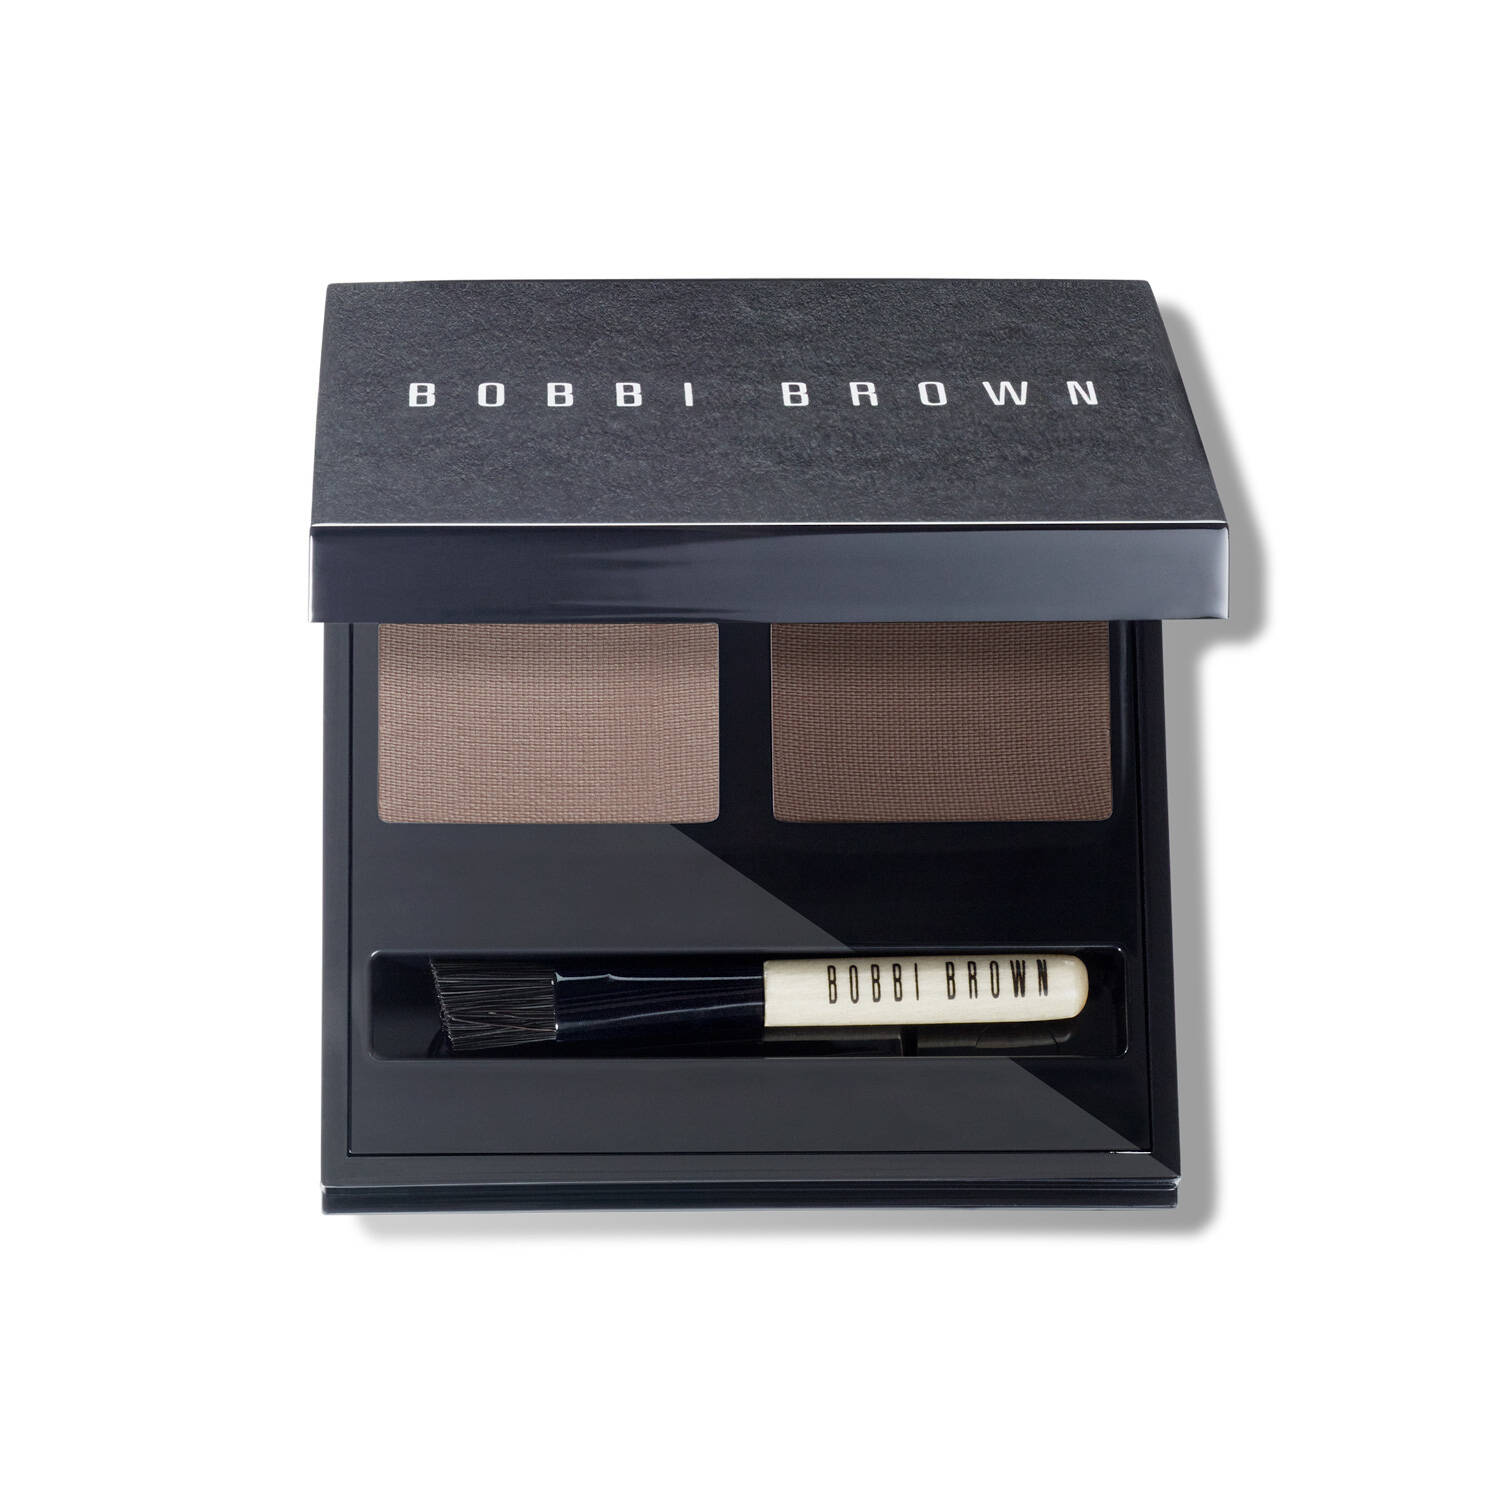 Bobbi Brown Brow Kit - Medium (3 g) Make Up, Augen, Augenbrauen, Augen von Bobbi Brown